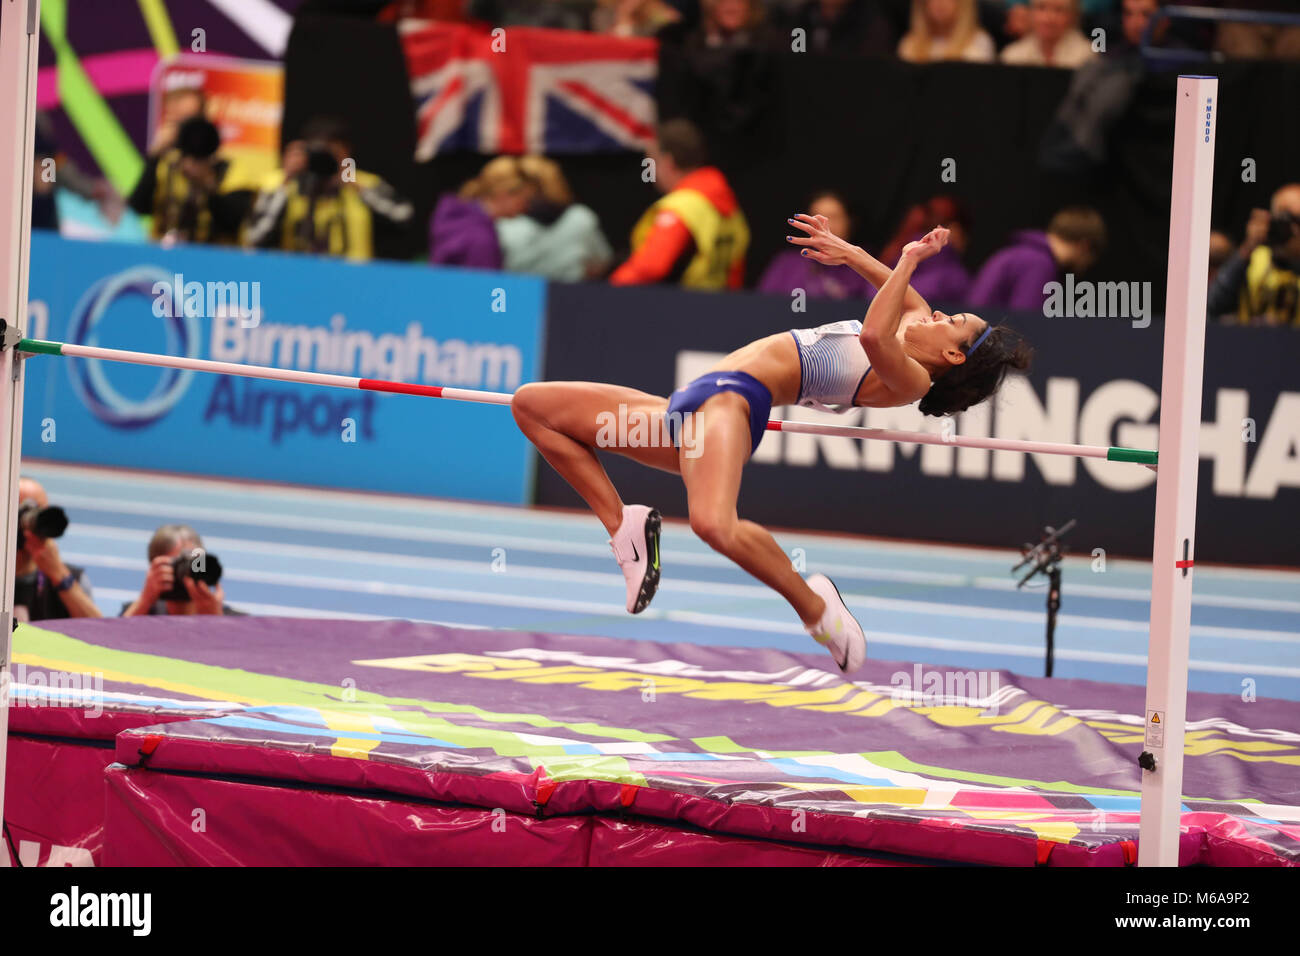 March 2, 2018 - Birmingham, United Kingdom - Katarina Johnson-Thompson from Great Britain competes in the high jump - Stock Image